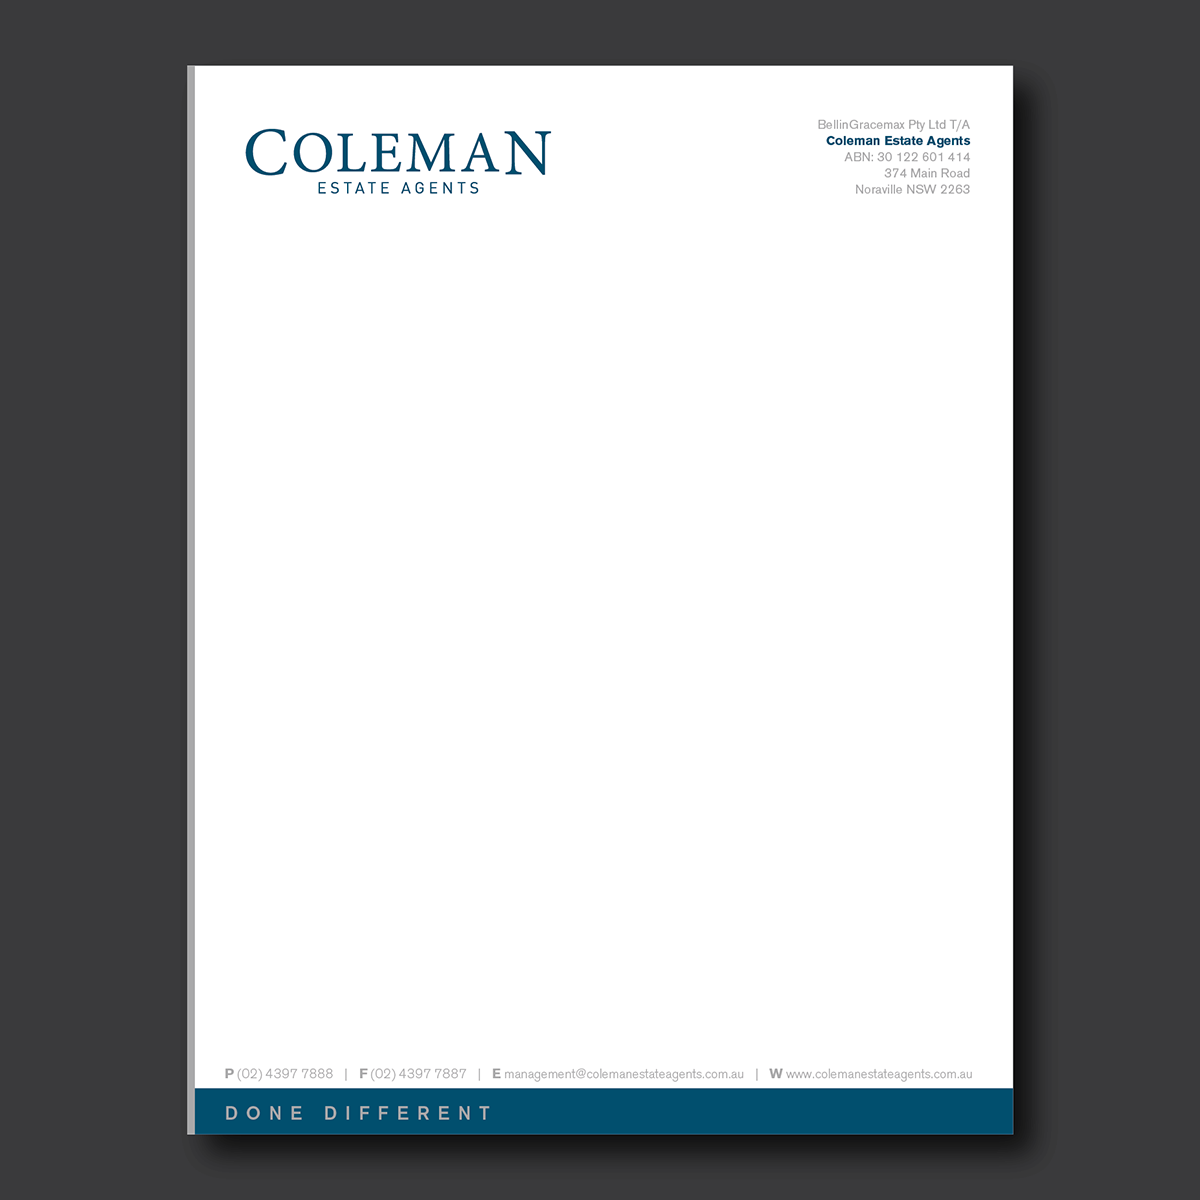 Business Letterhead: Free Printable Letterhead